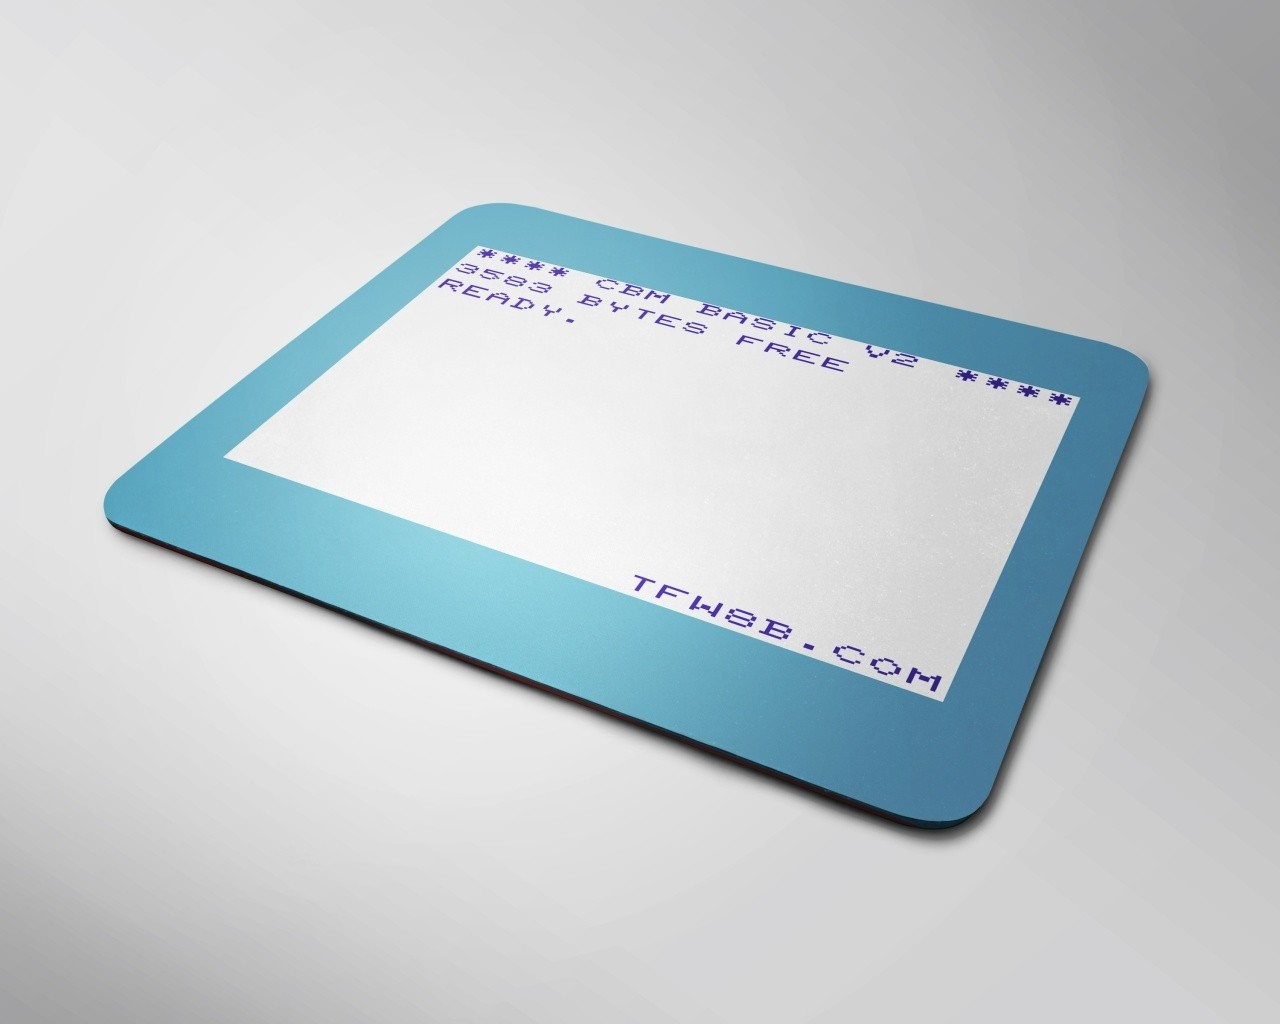 TFW8b VIC20 'Basic' Mouse Mat